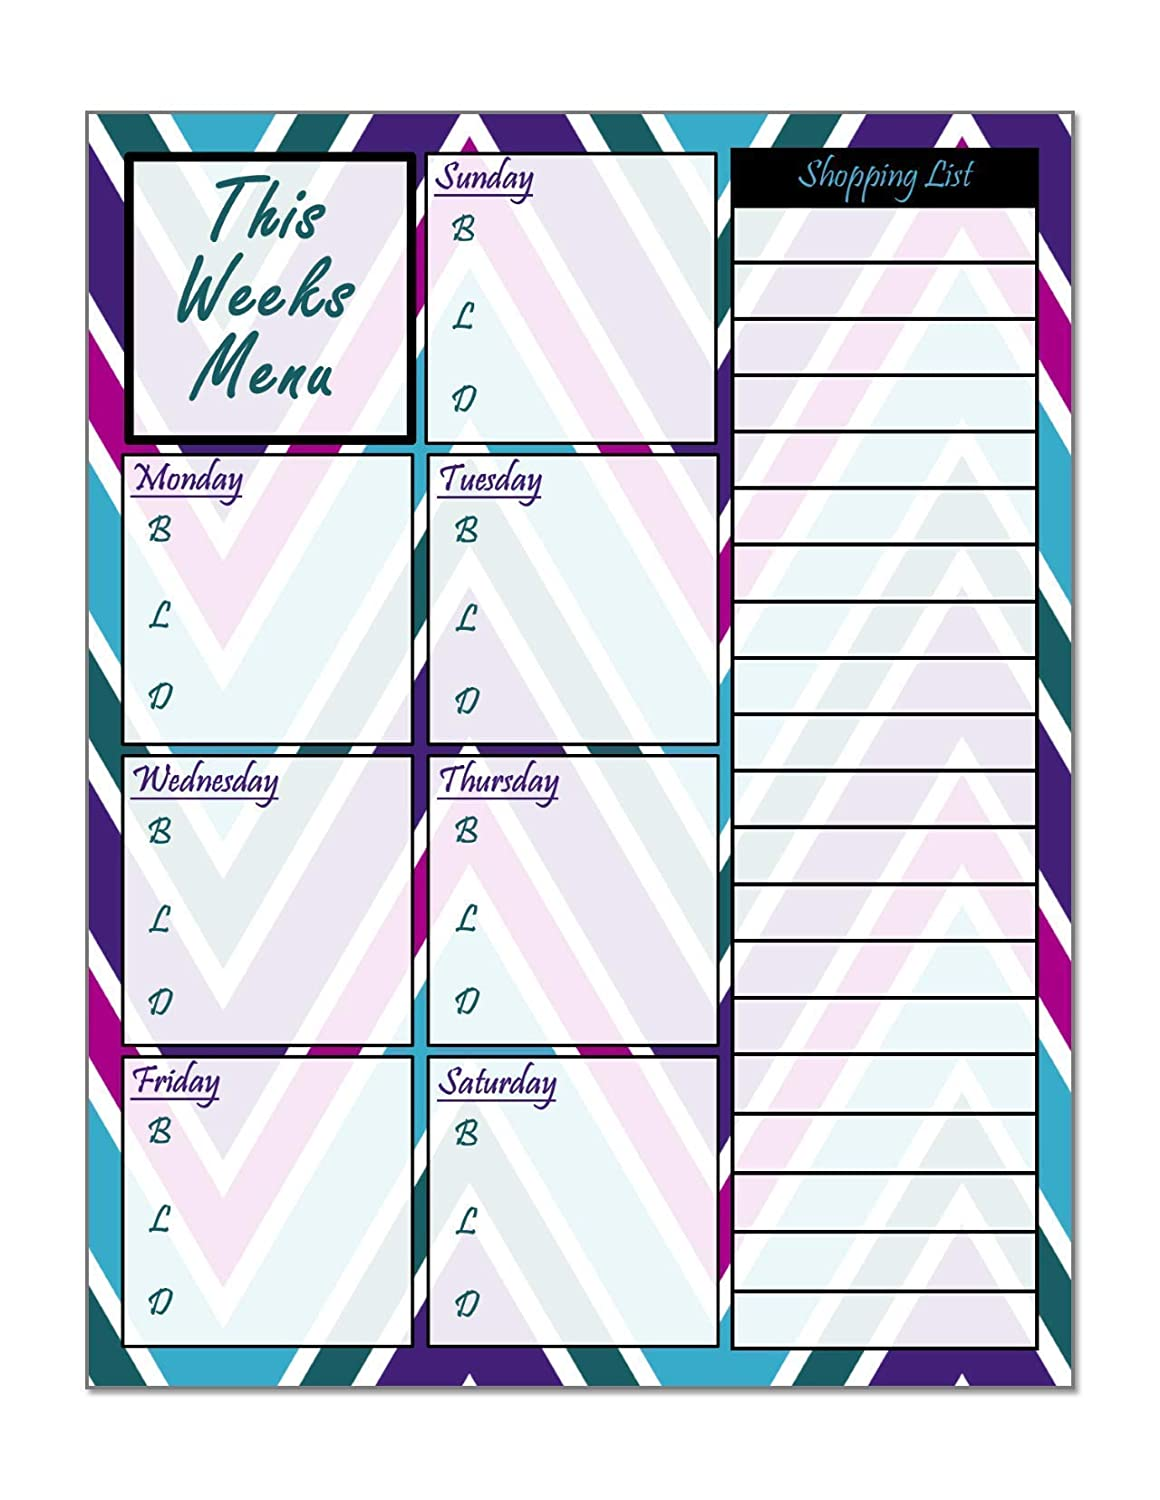 Easy To Use Dry Erasable For Refridgerator Weekly Meal Menu Planner